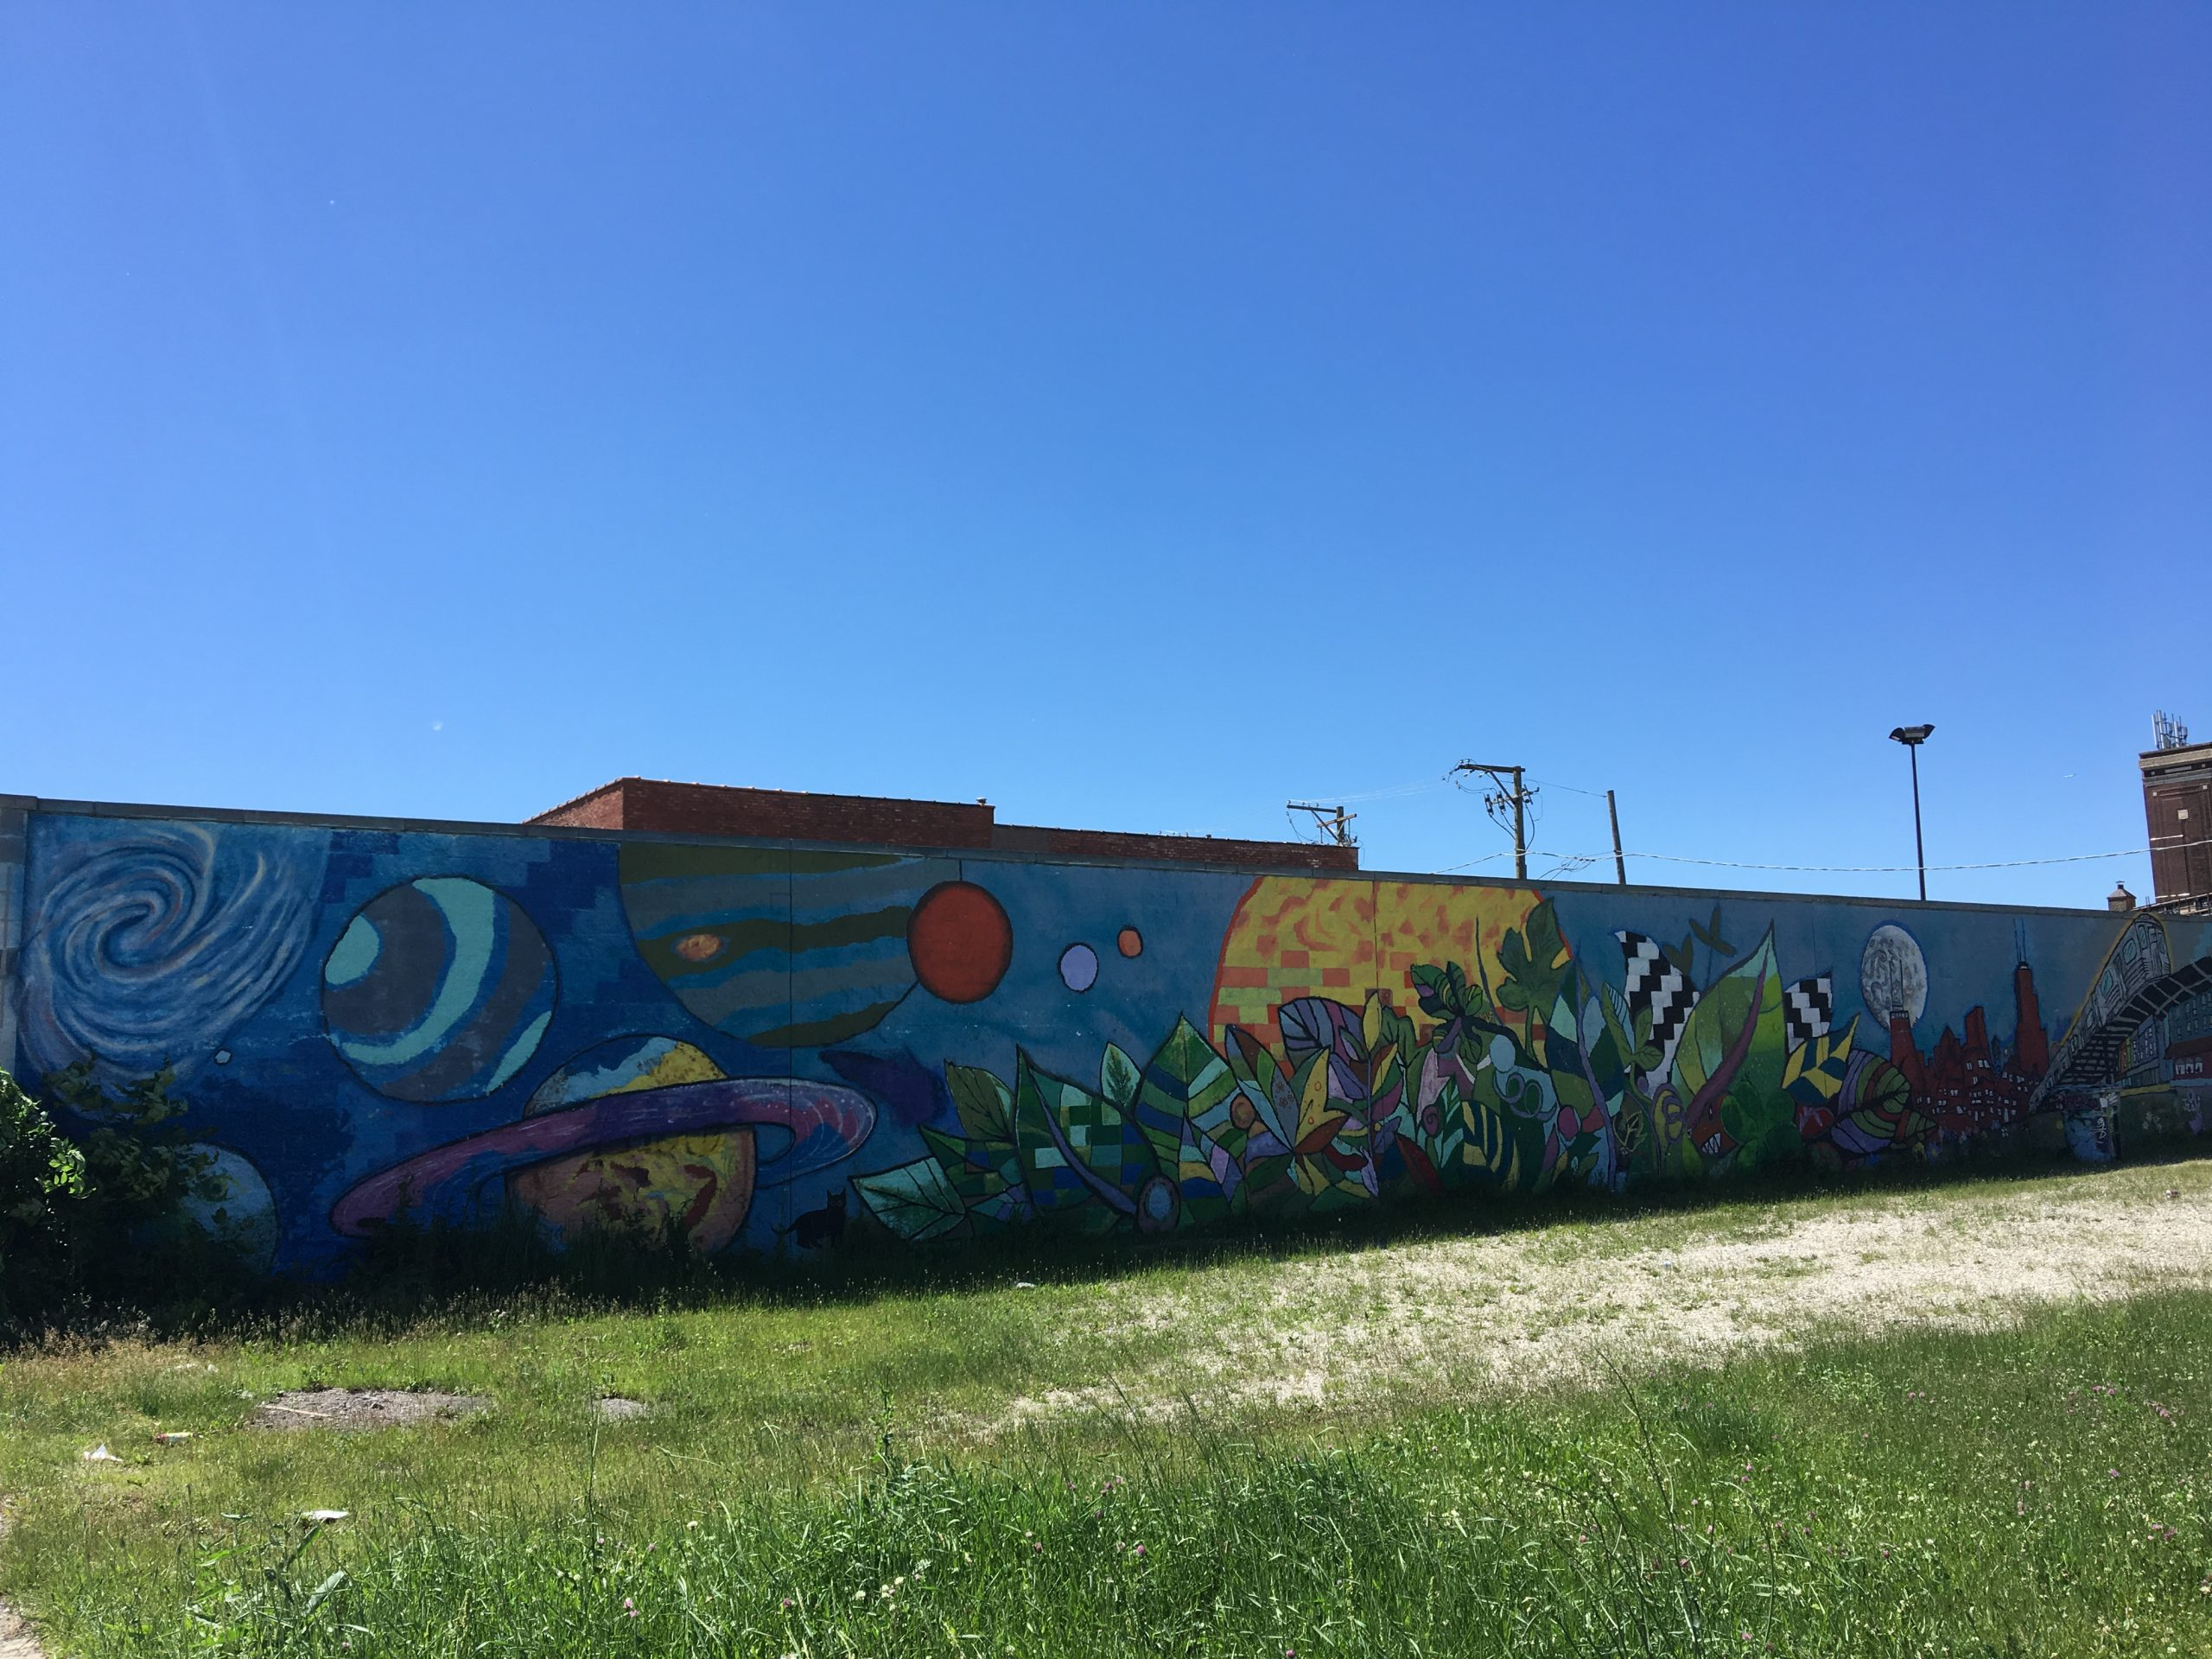 The community mural on Project Logan's eastern wall